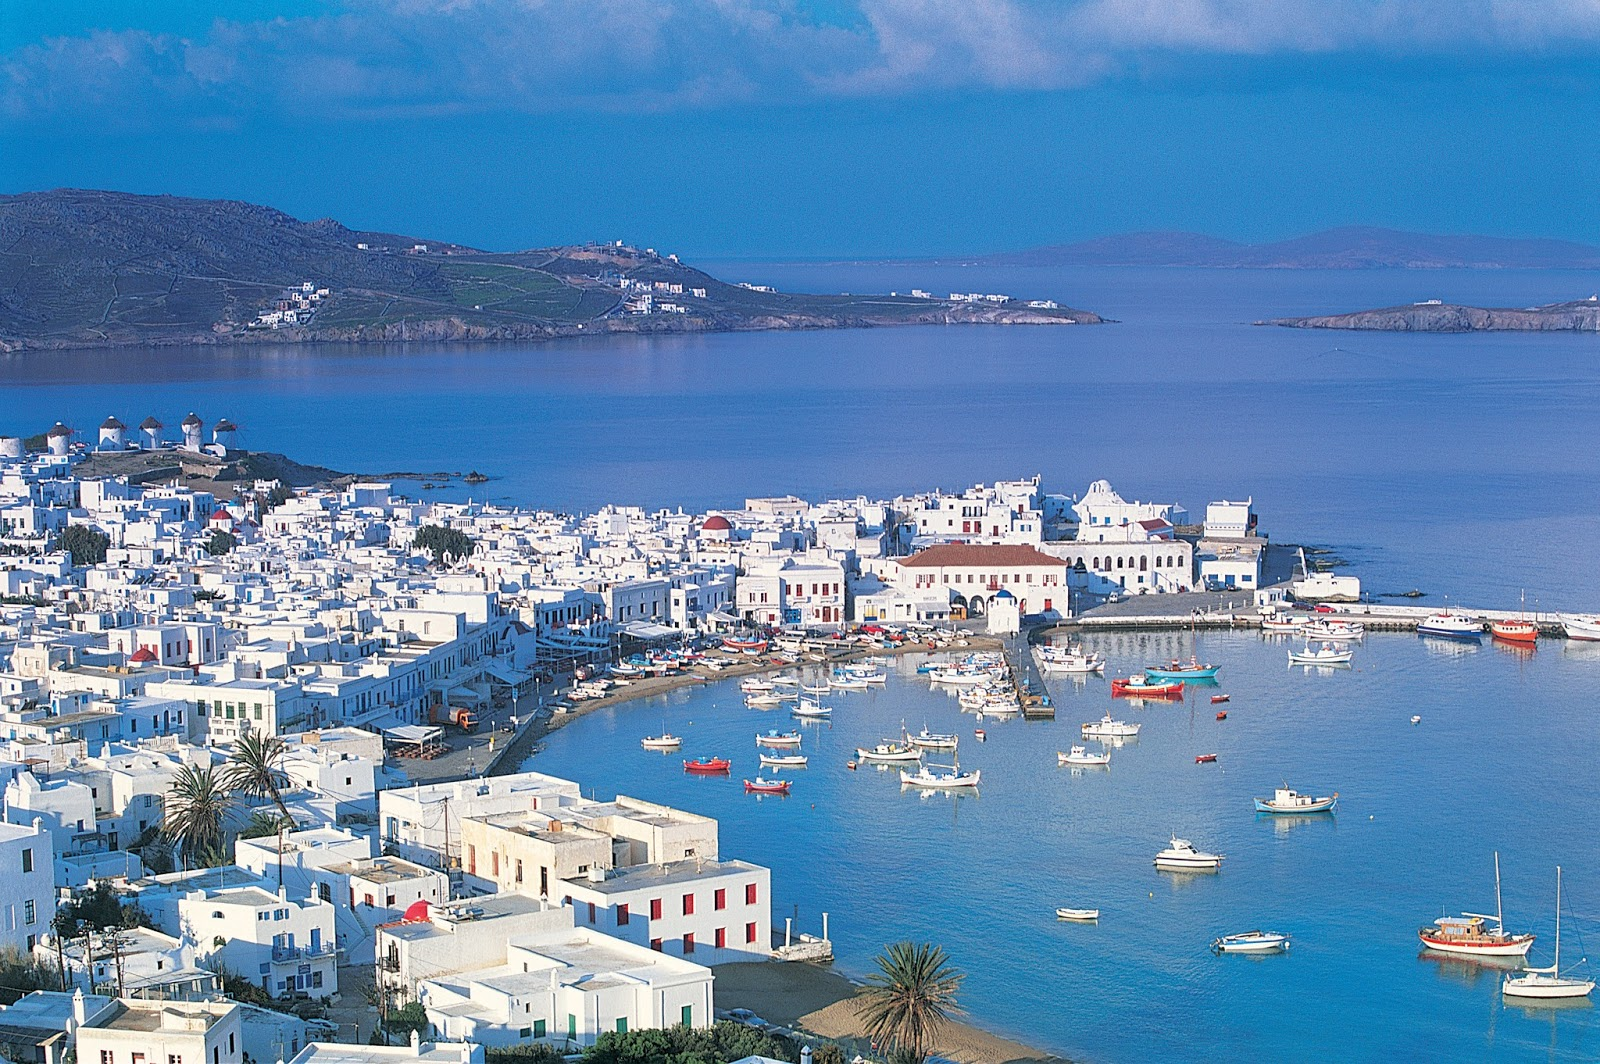 island of patmos biblical importance Have you ever been at patmos greece this island is one of the most  of this famous biblical  understanding of the importance and relevance.